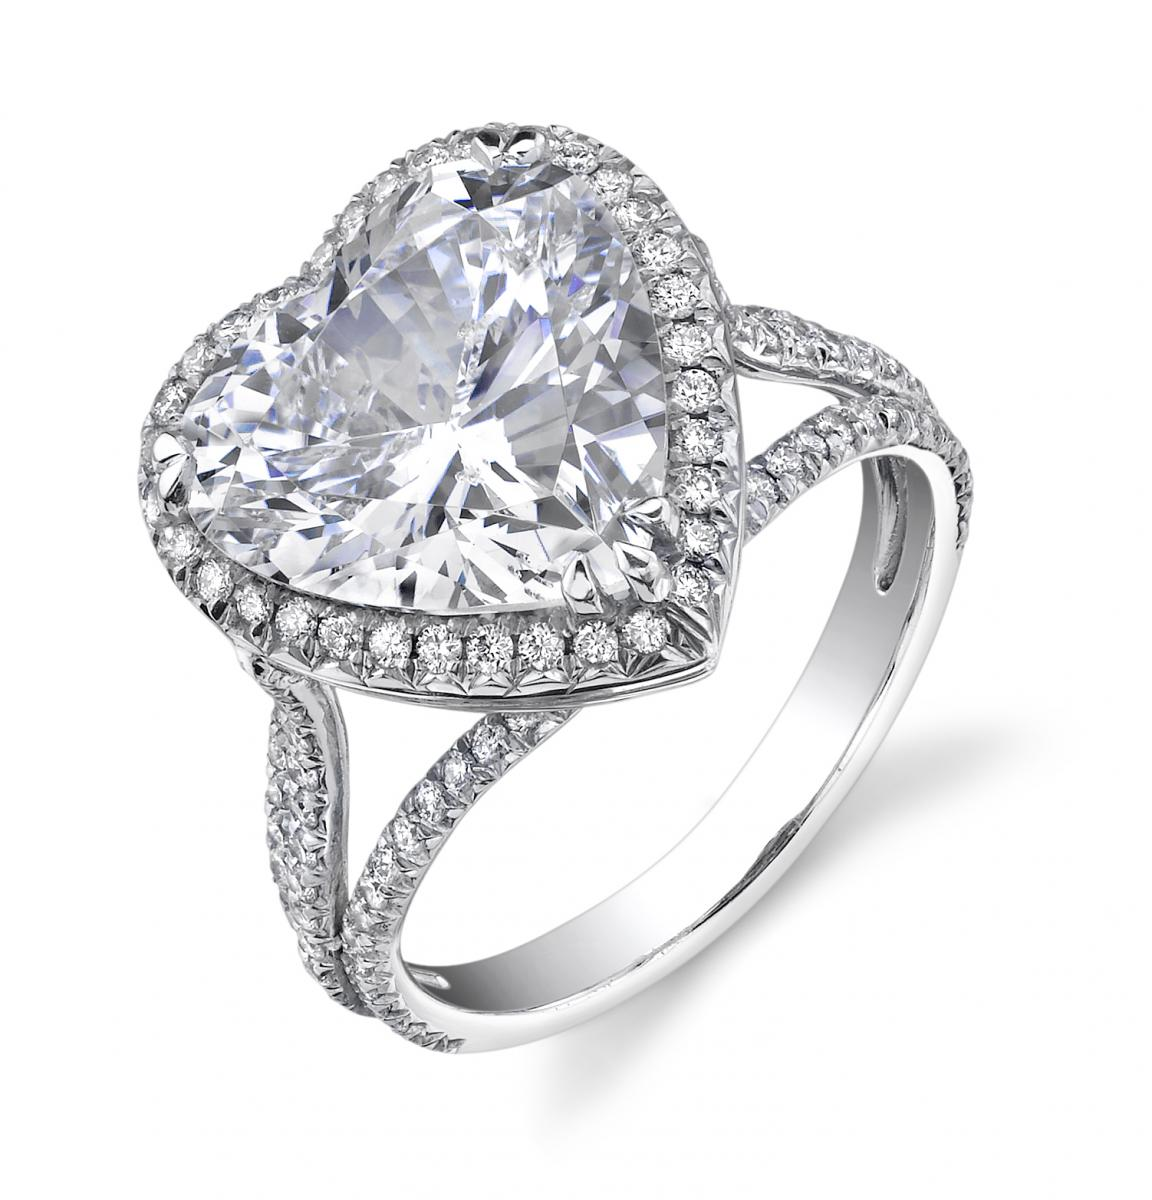 show your love by giving a heart shaped engagement ring